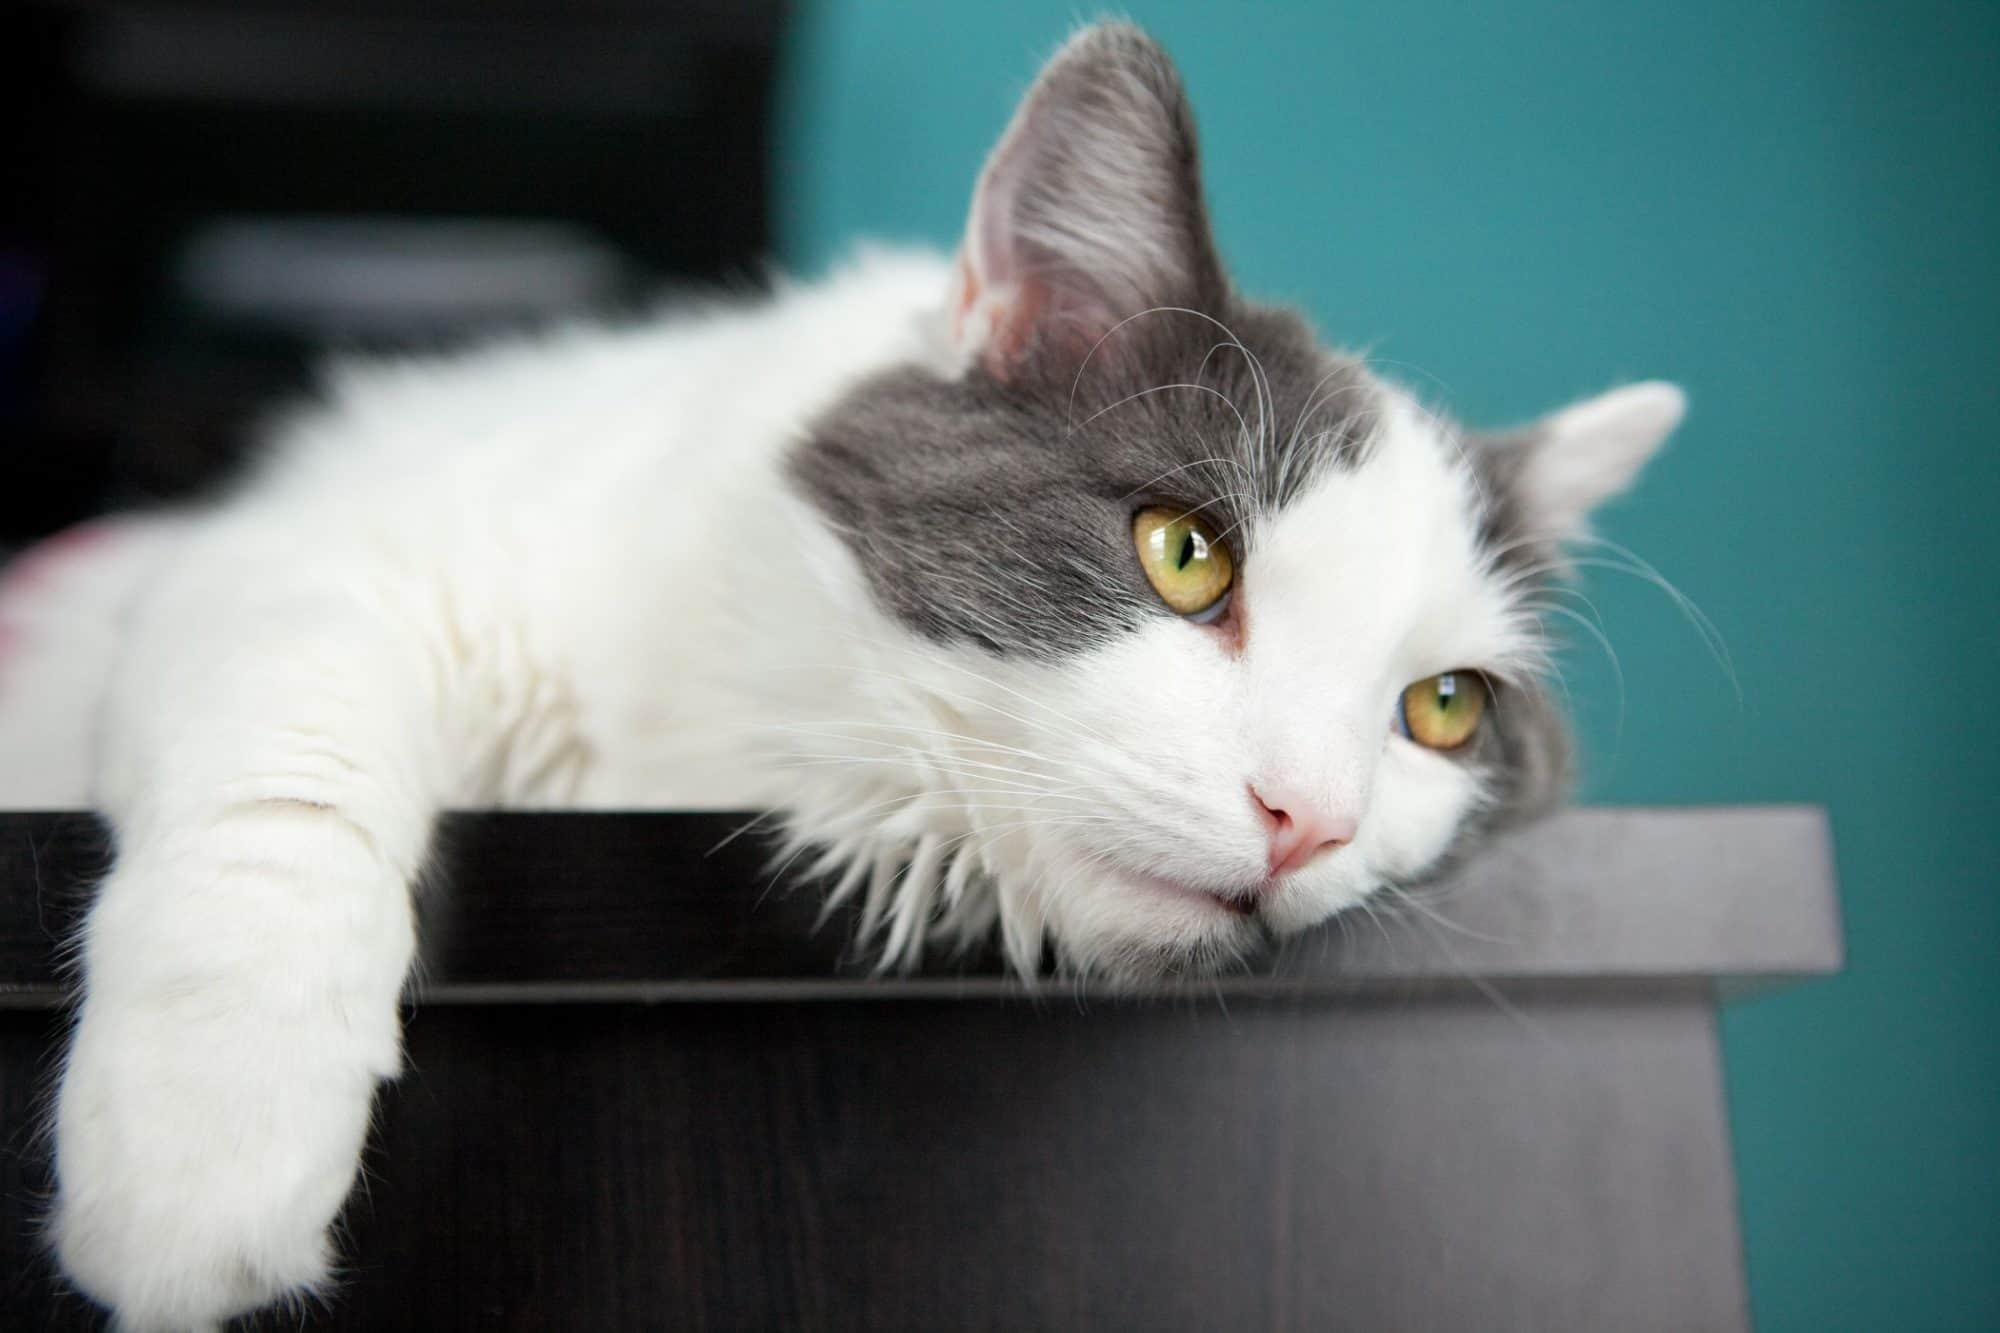 A gray and white cat being lazy